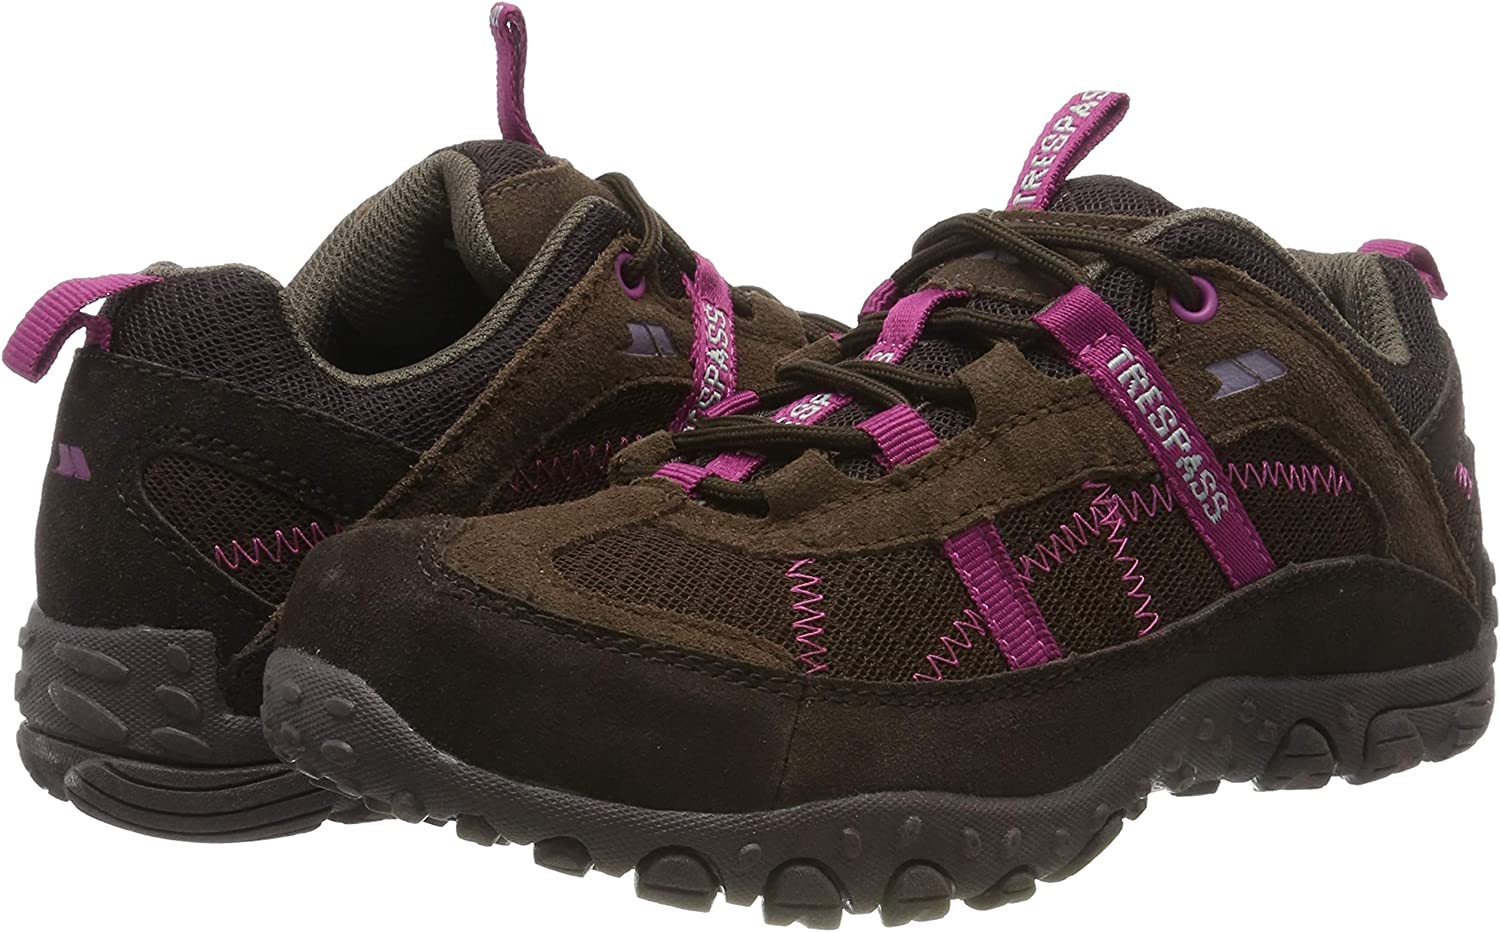 Fell Low Rise Hiking Boots